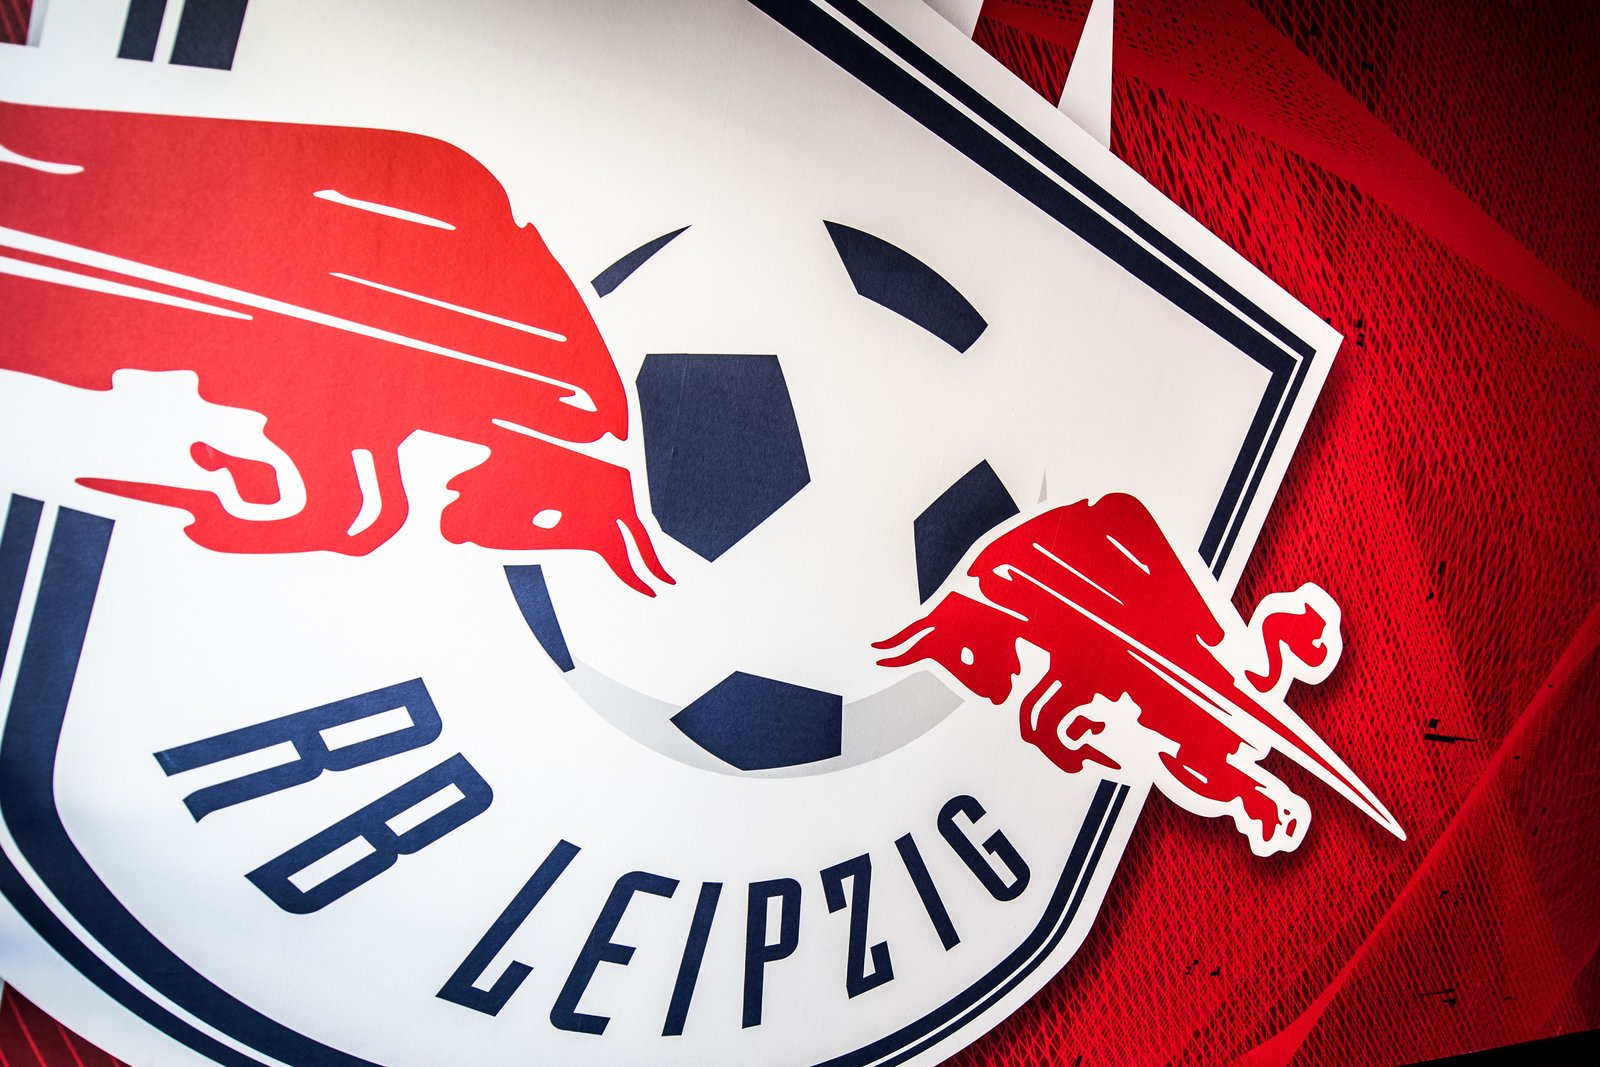 RB Leipzig - all you need to know